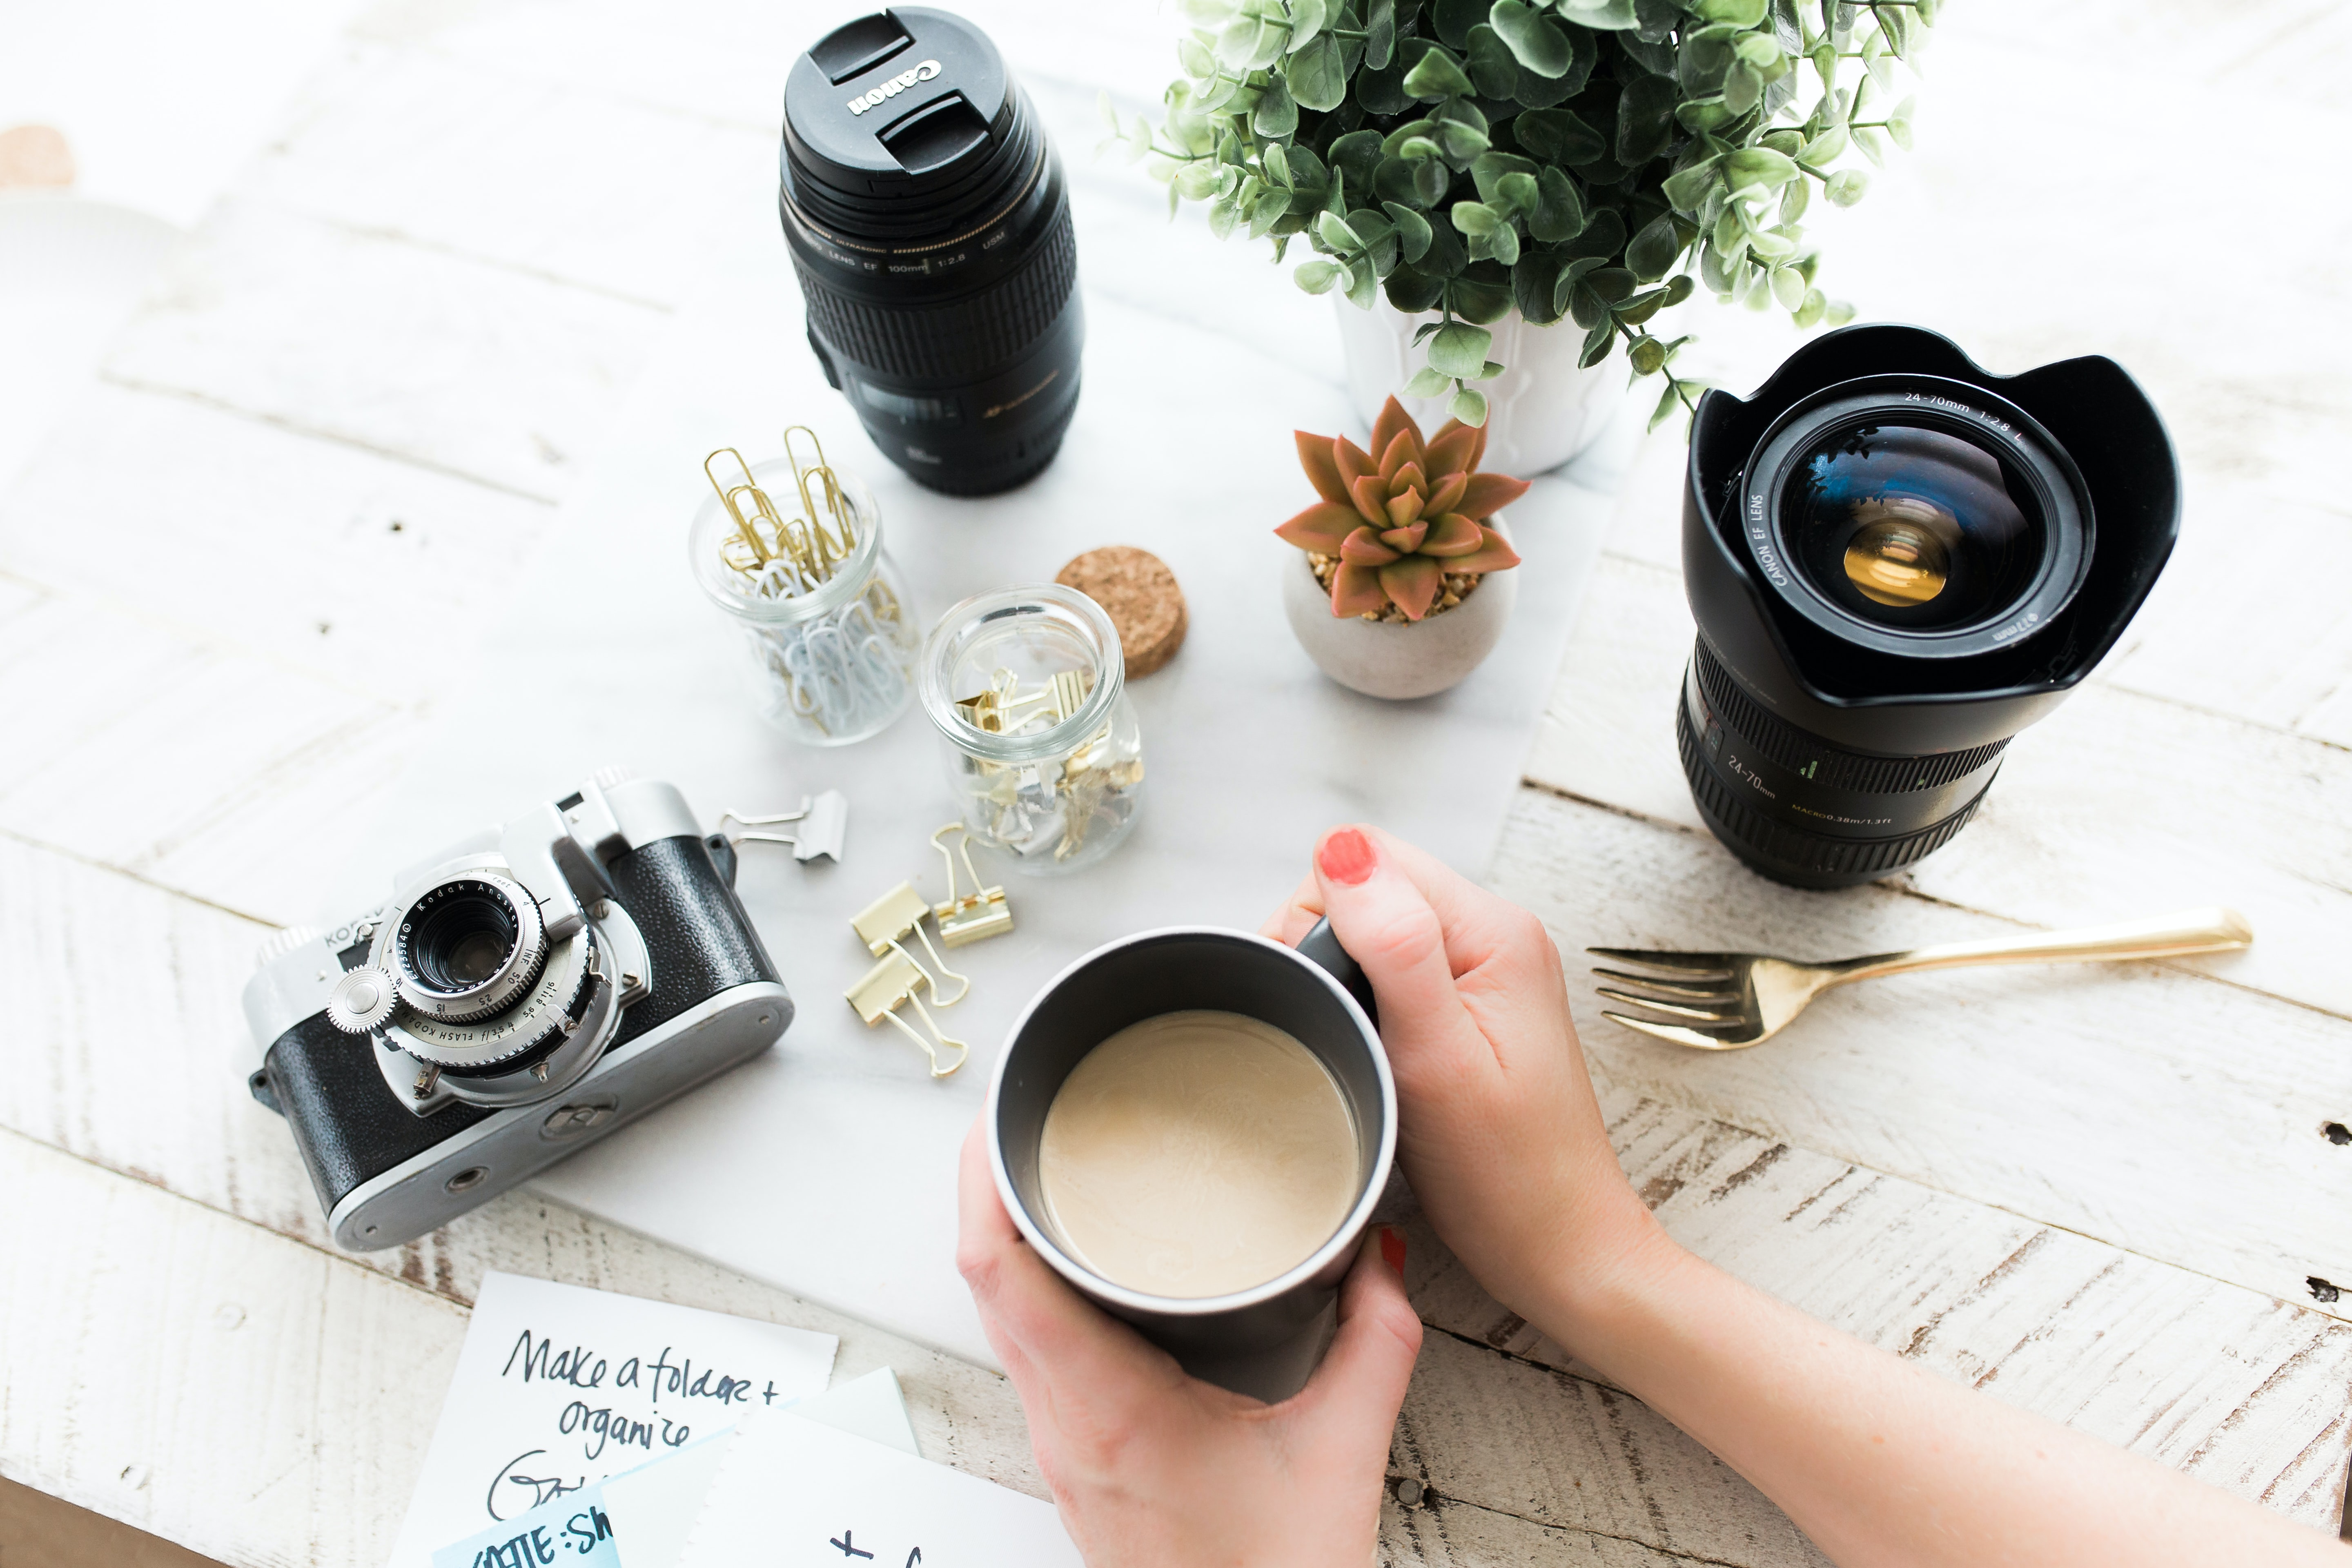 person holding black ceramic coffee mug beside black DSLR camera